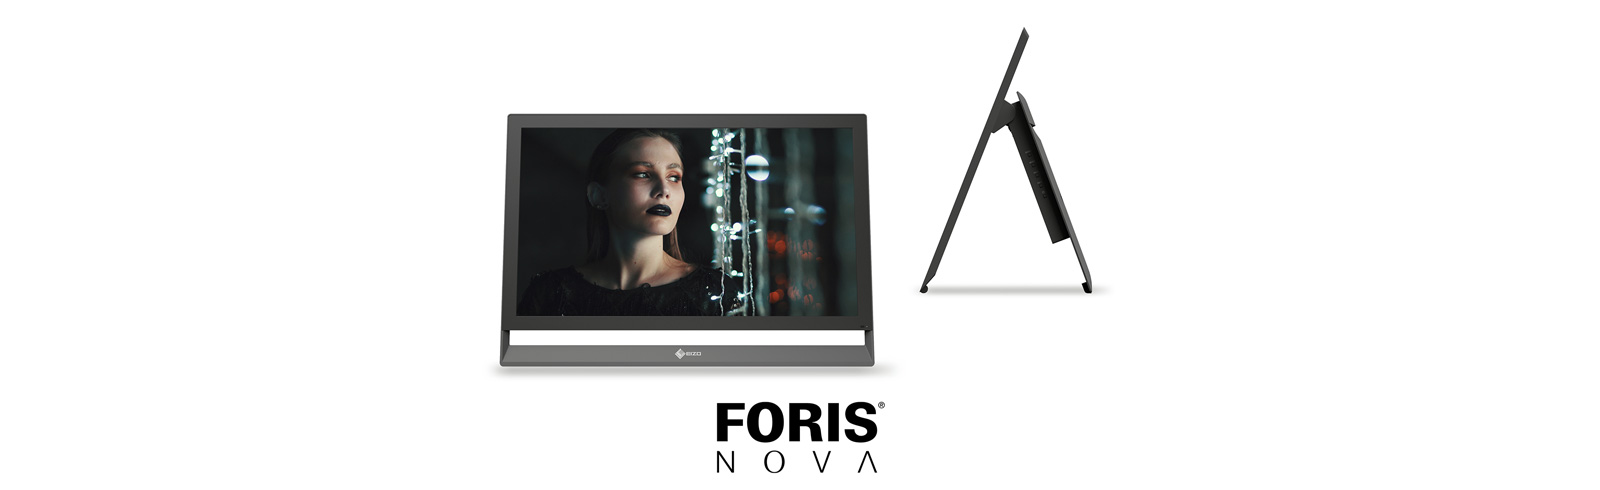 "Eizo unveils the FORIS NOVA - a 21.6"" 4K HDR monitor for private entertainment"